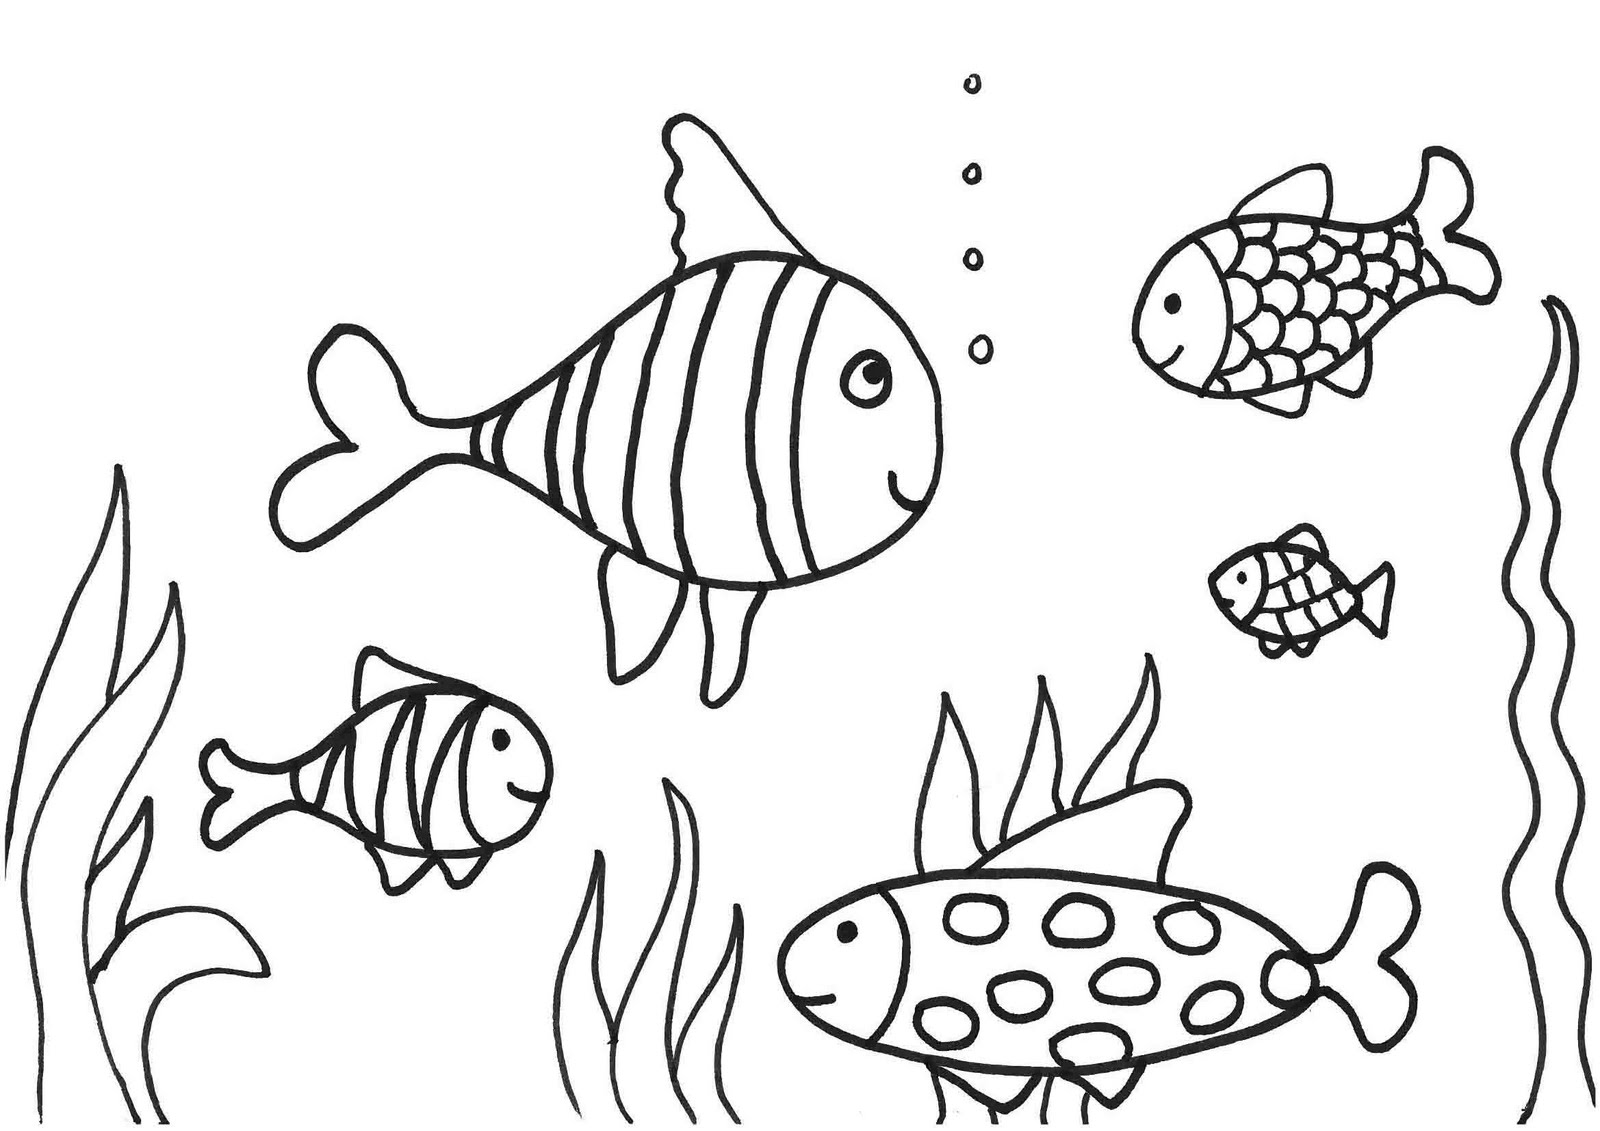 fish picture to color goldfish coloring pages download and print goldfish picture color to fish